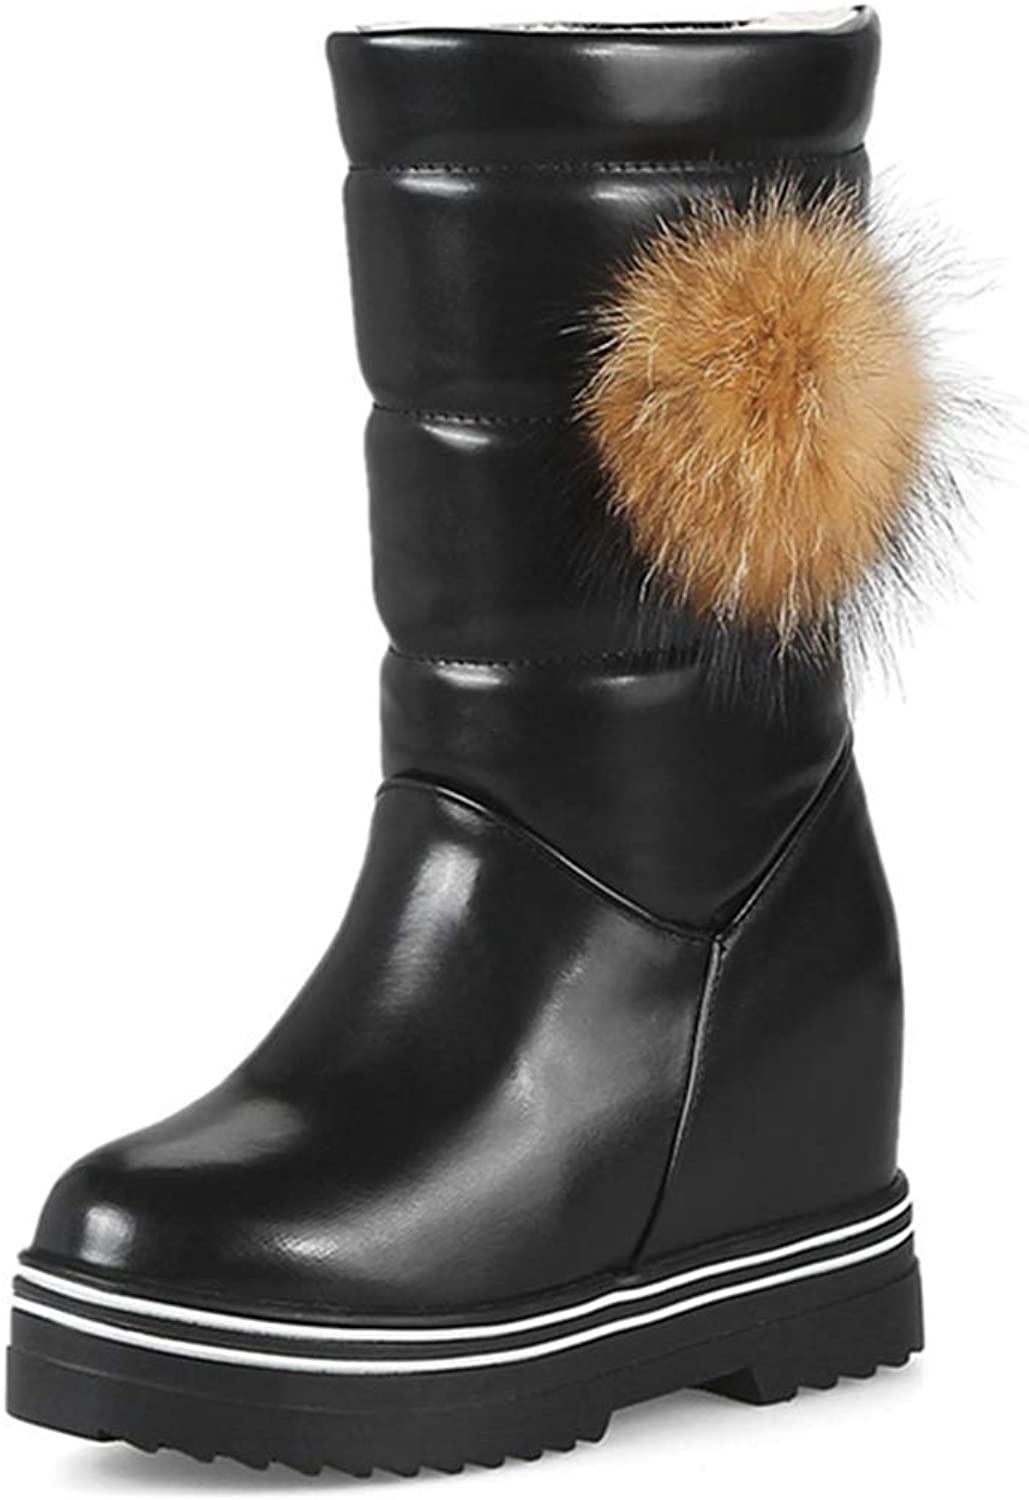 Webb Perkin Women Platform Height Increasing Warm Female Boots Round Toe Snow shoes Lady Mid Calf Boots